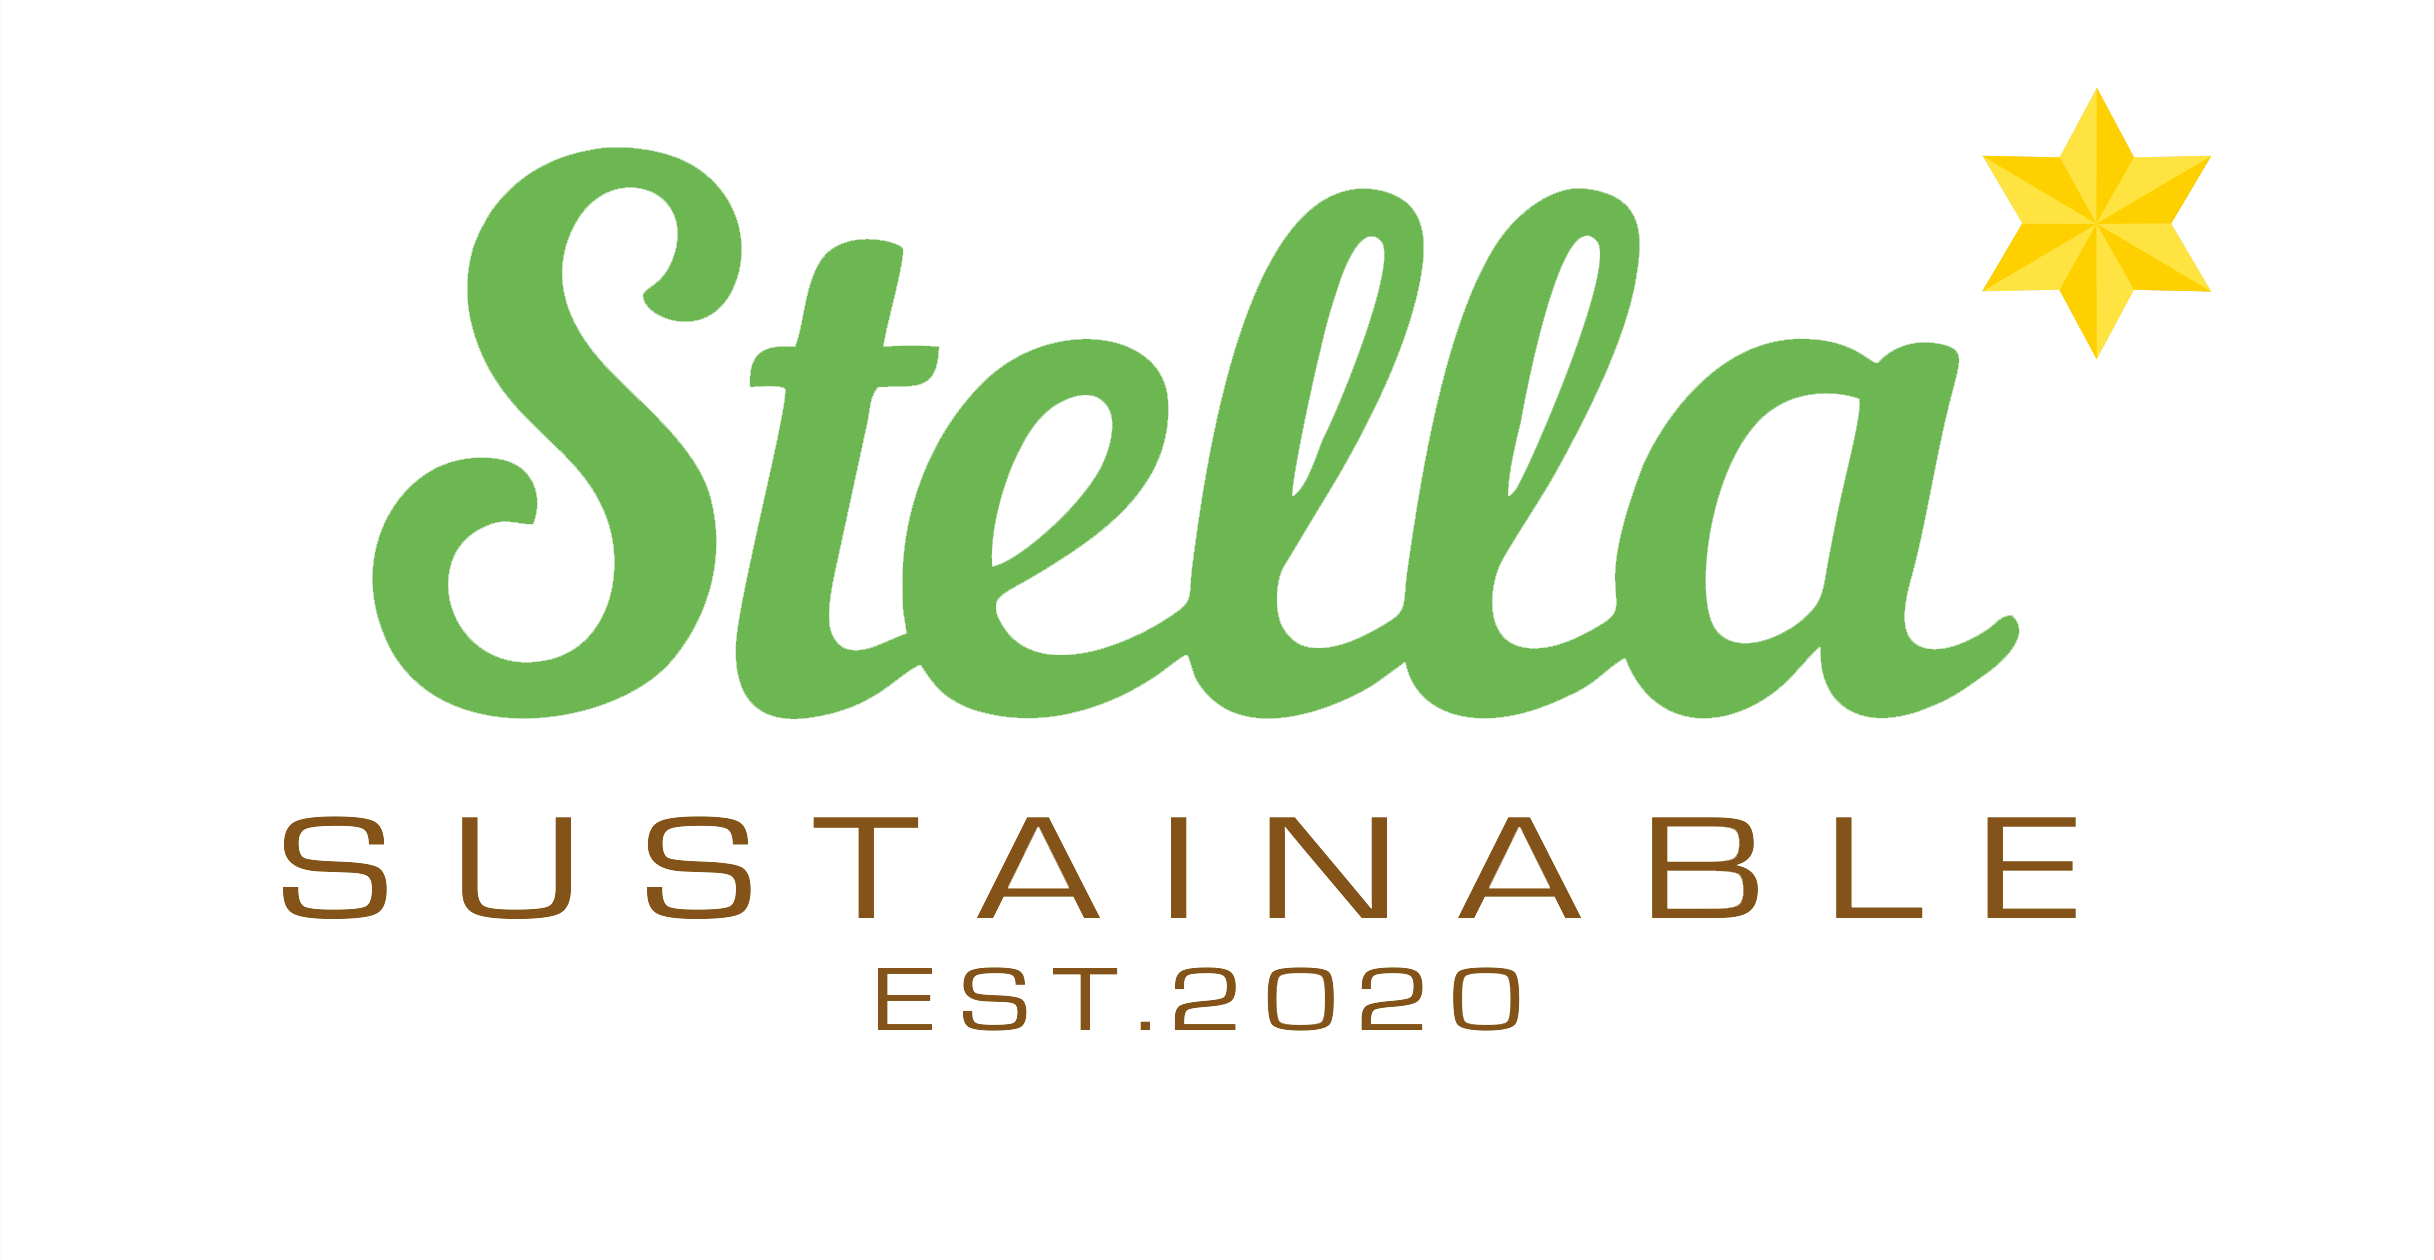 Sustainable Stella